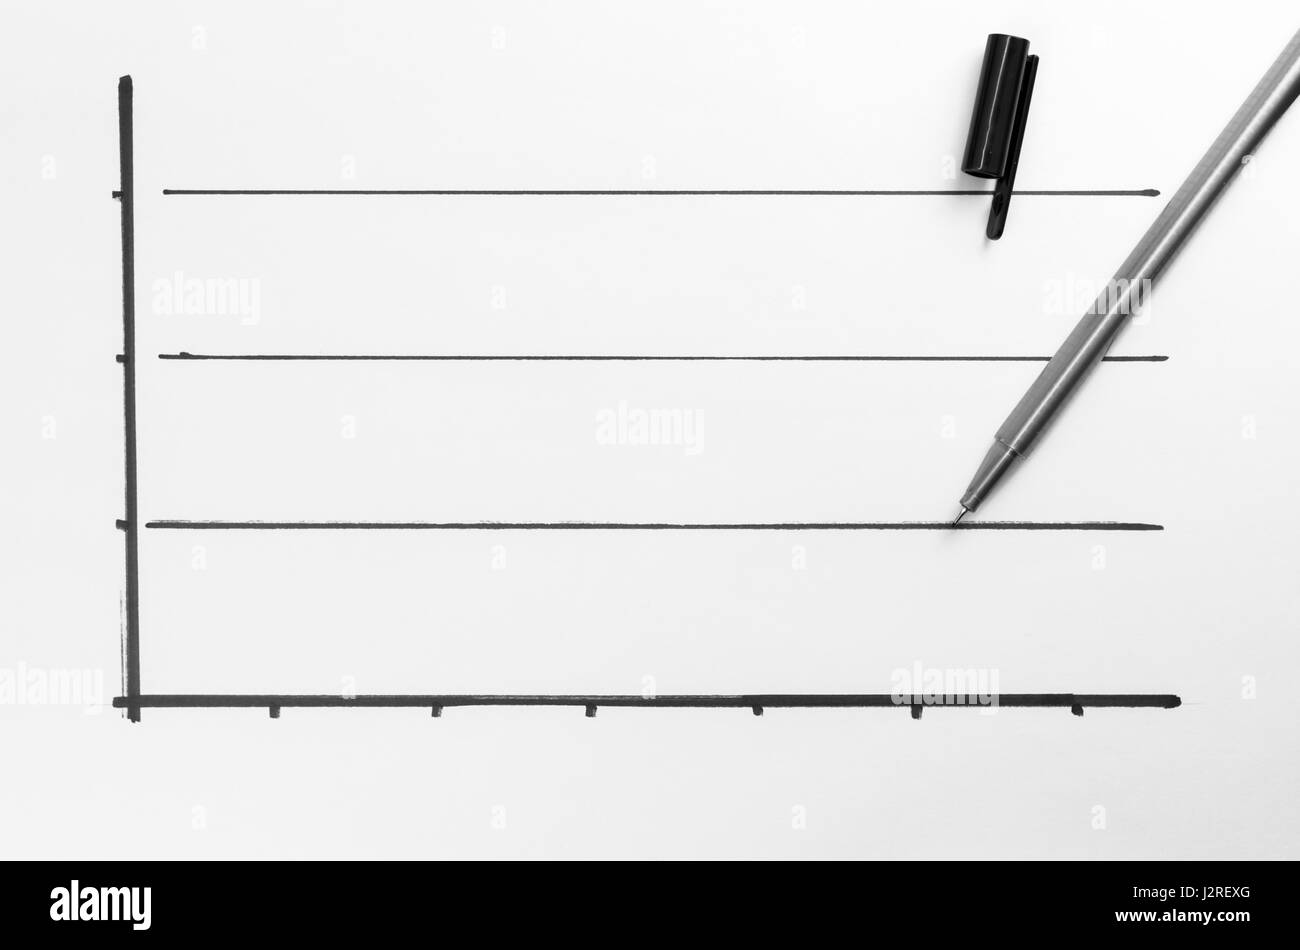 blank graph backdrop with pencil - top view - Stock Image